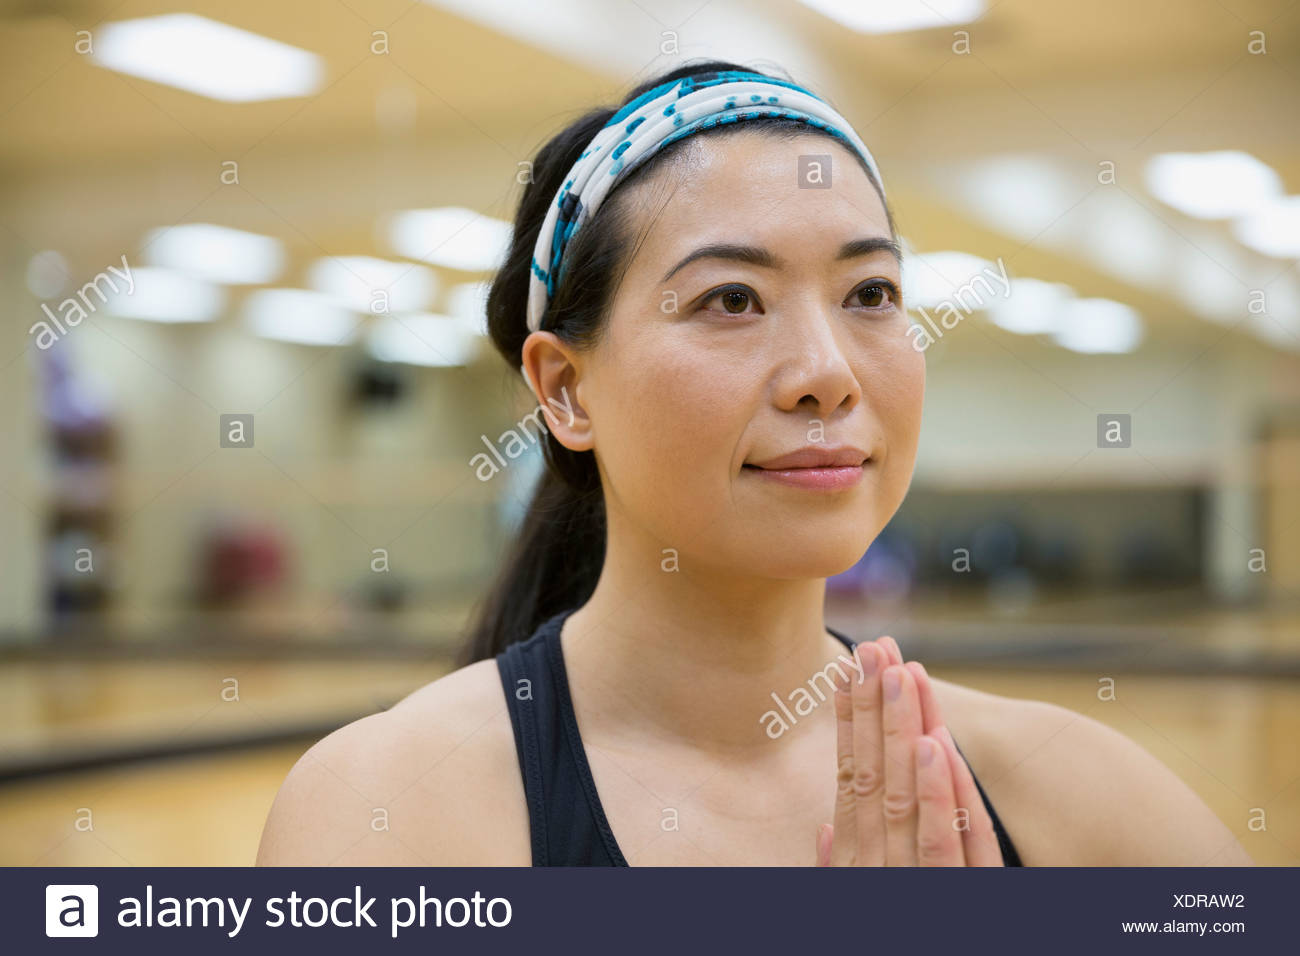 Close up of woman in yoga prayer position - Stock Image